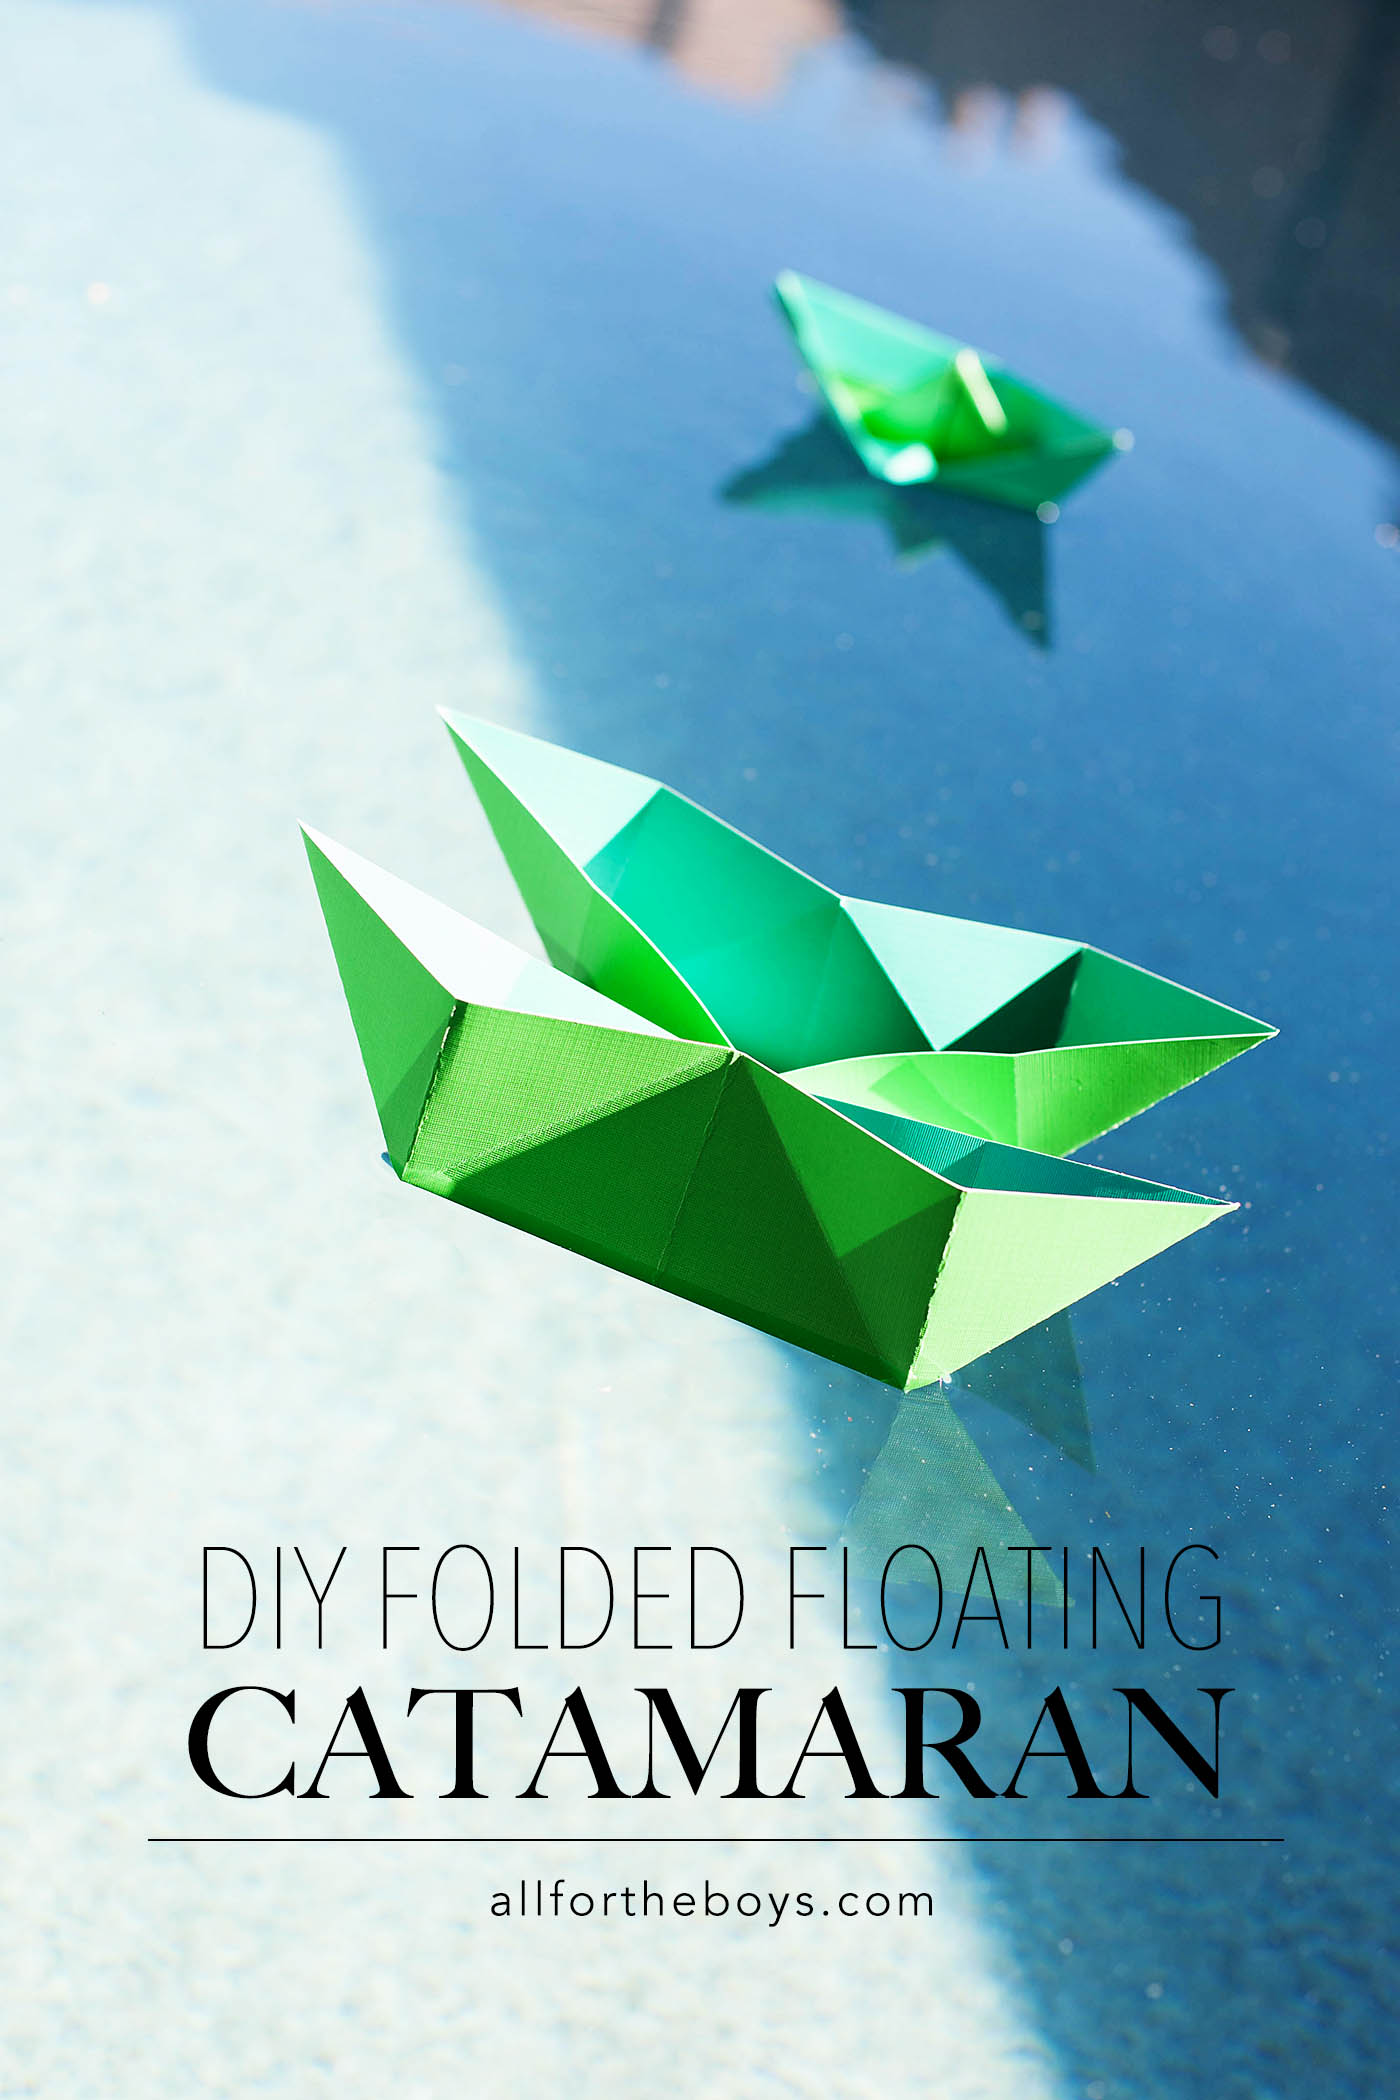 DIY folded floating catamaran!